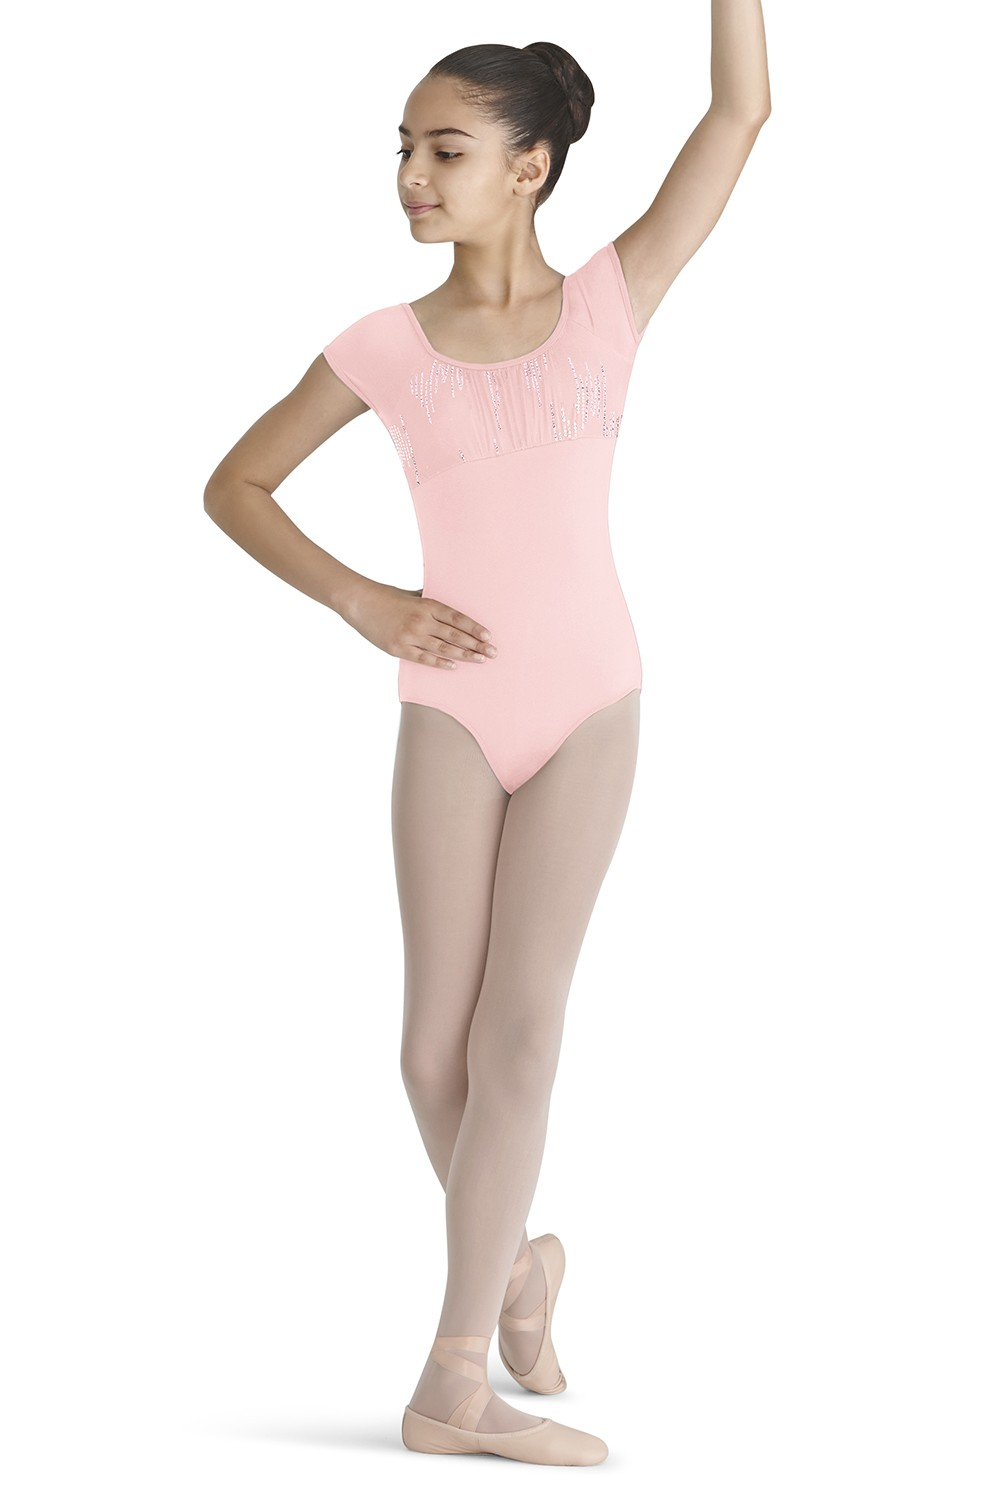 Cap Sleeve Leo Children's Dance Leotards